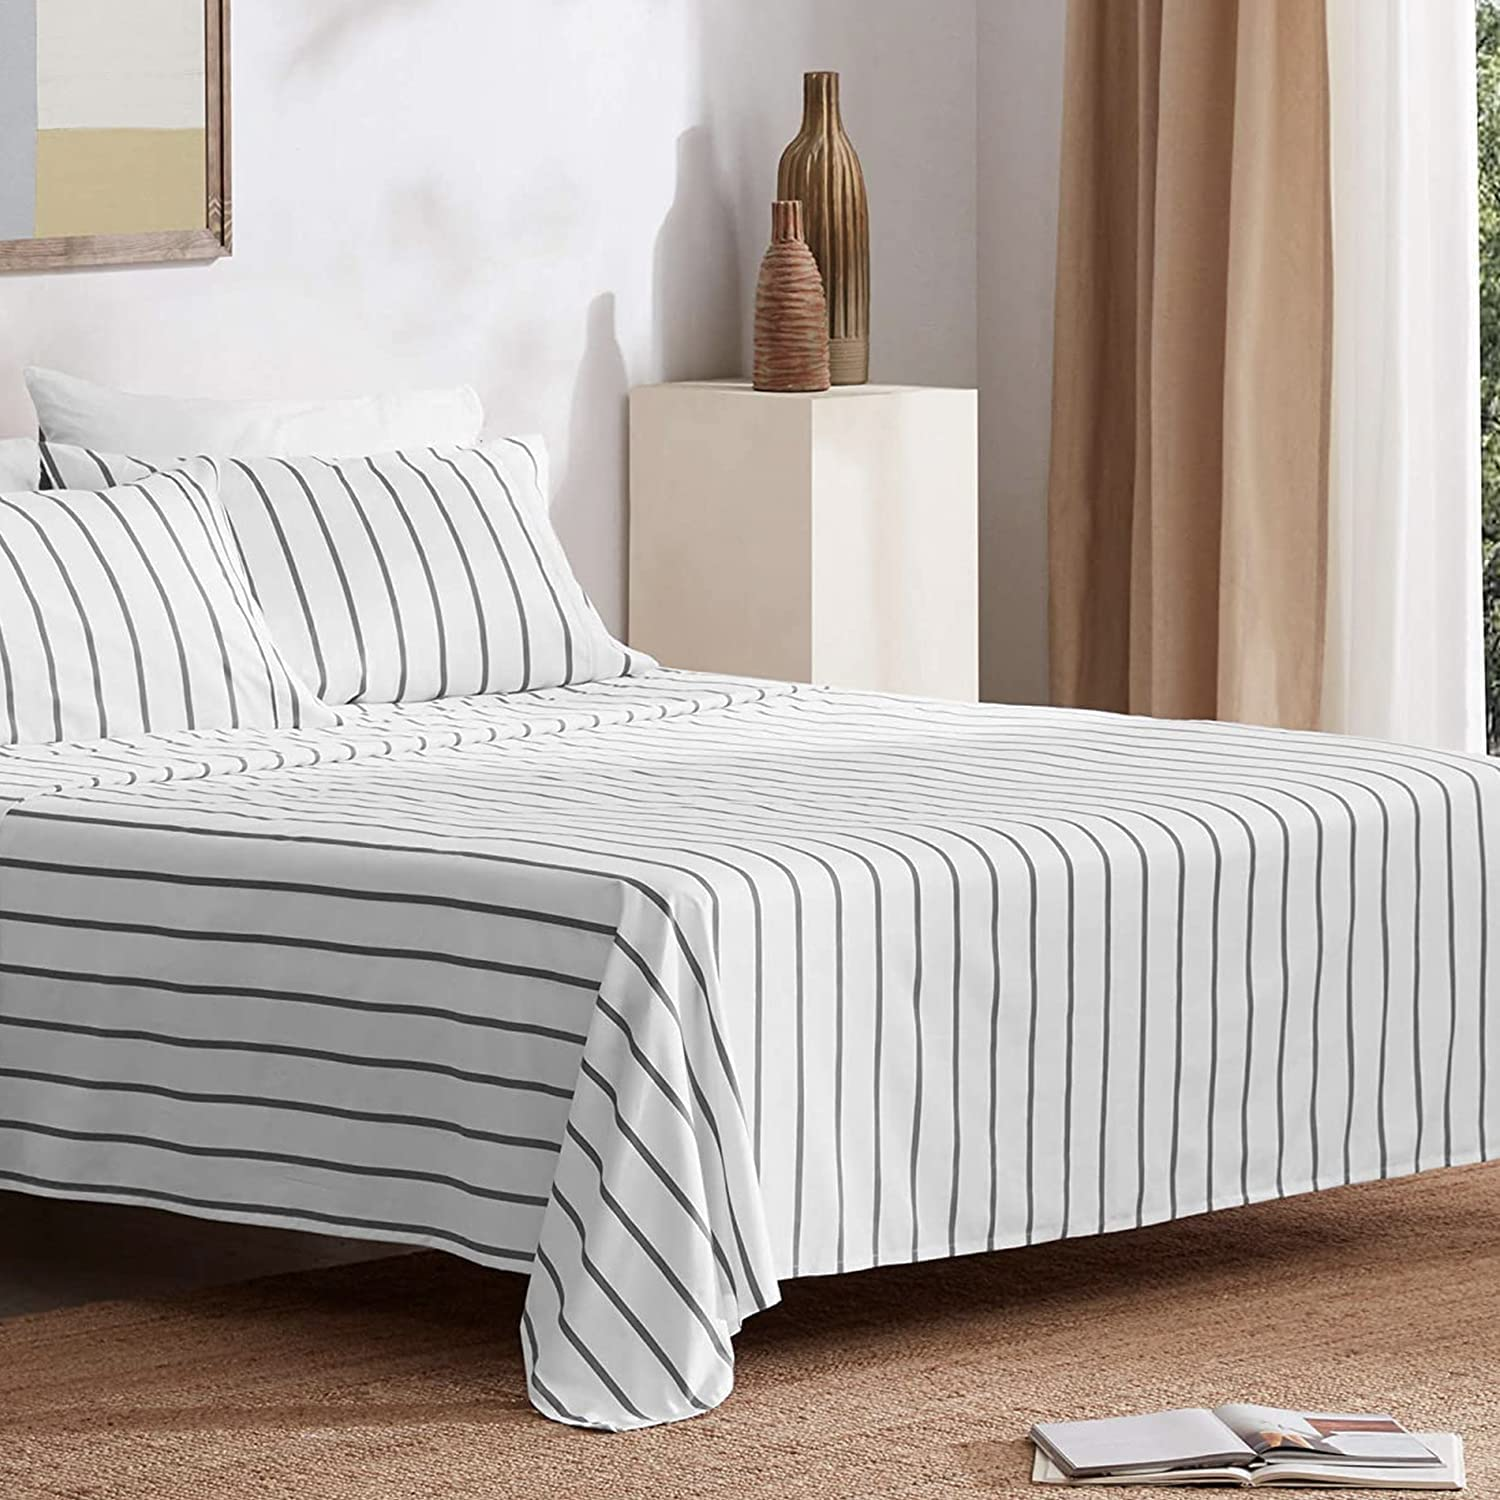 SLEEP ZONE 4-Piece Printed Stripe Sheet Set Queen Size - Double Brushed Microfiber Super Soft Breathable Bed Sheet Set with 16 inch Deep Pocket (Grey Stripe Printed on White)